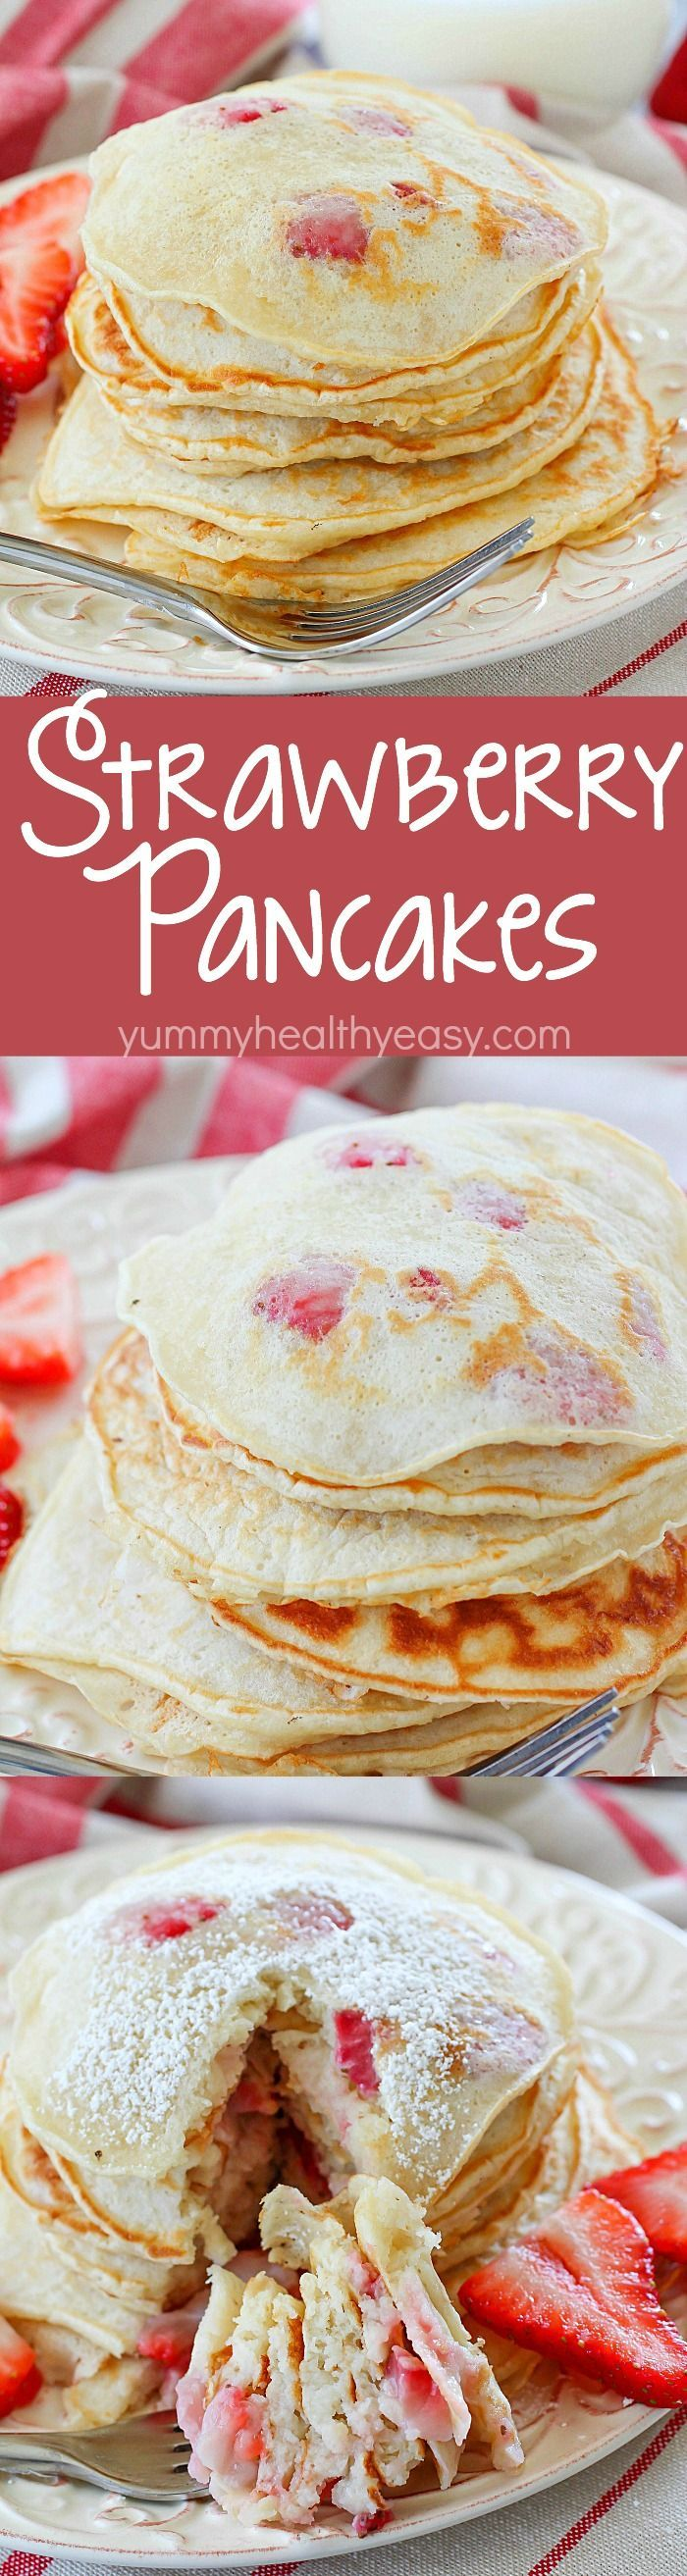 Start your day right with a stack of Strawberry Pancakes! These pancakes are packed with cubed strawberries and are so light and fluffy! They're a quick and easy to make breakfast the whole family will love!